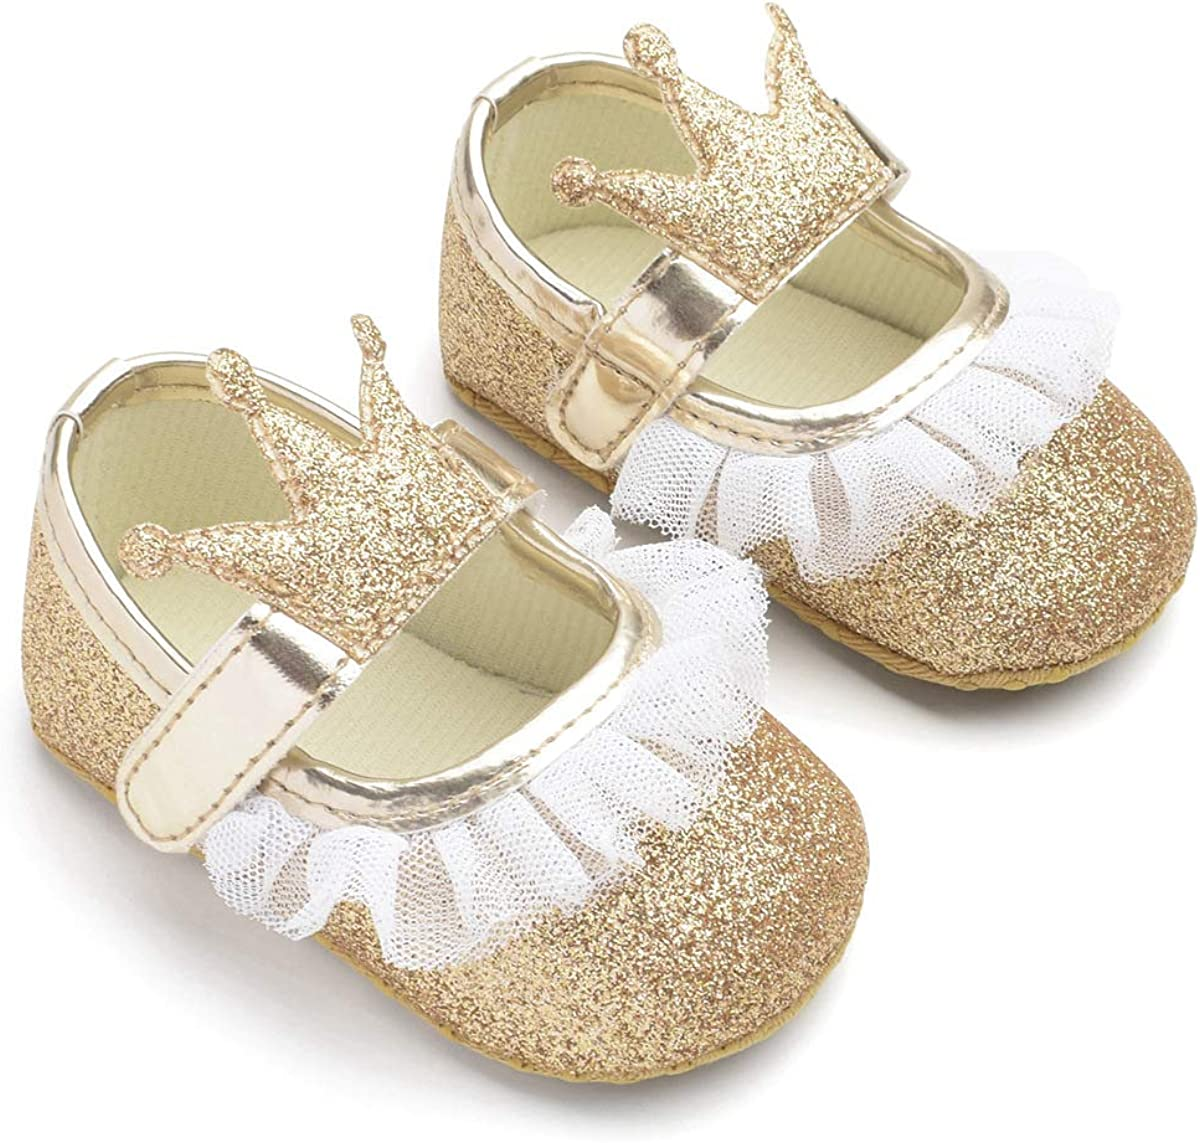 LHZZE Baby Girls Mary Jane Flats with Bowknot Non-Slip Infant First Walkers Princess Dress Shoes